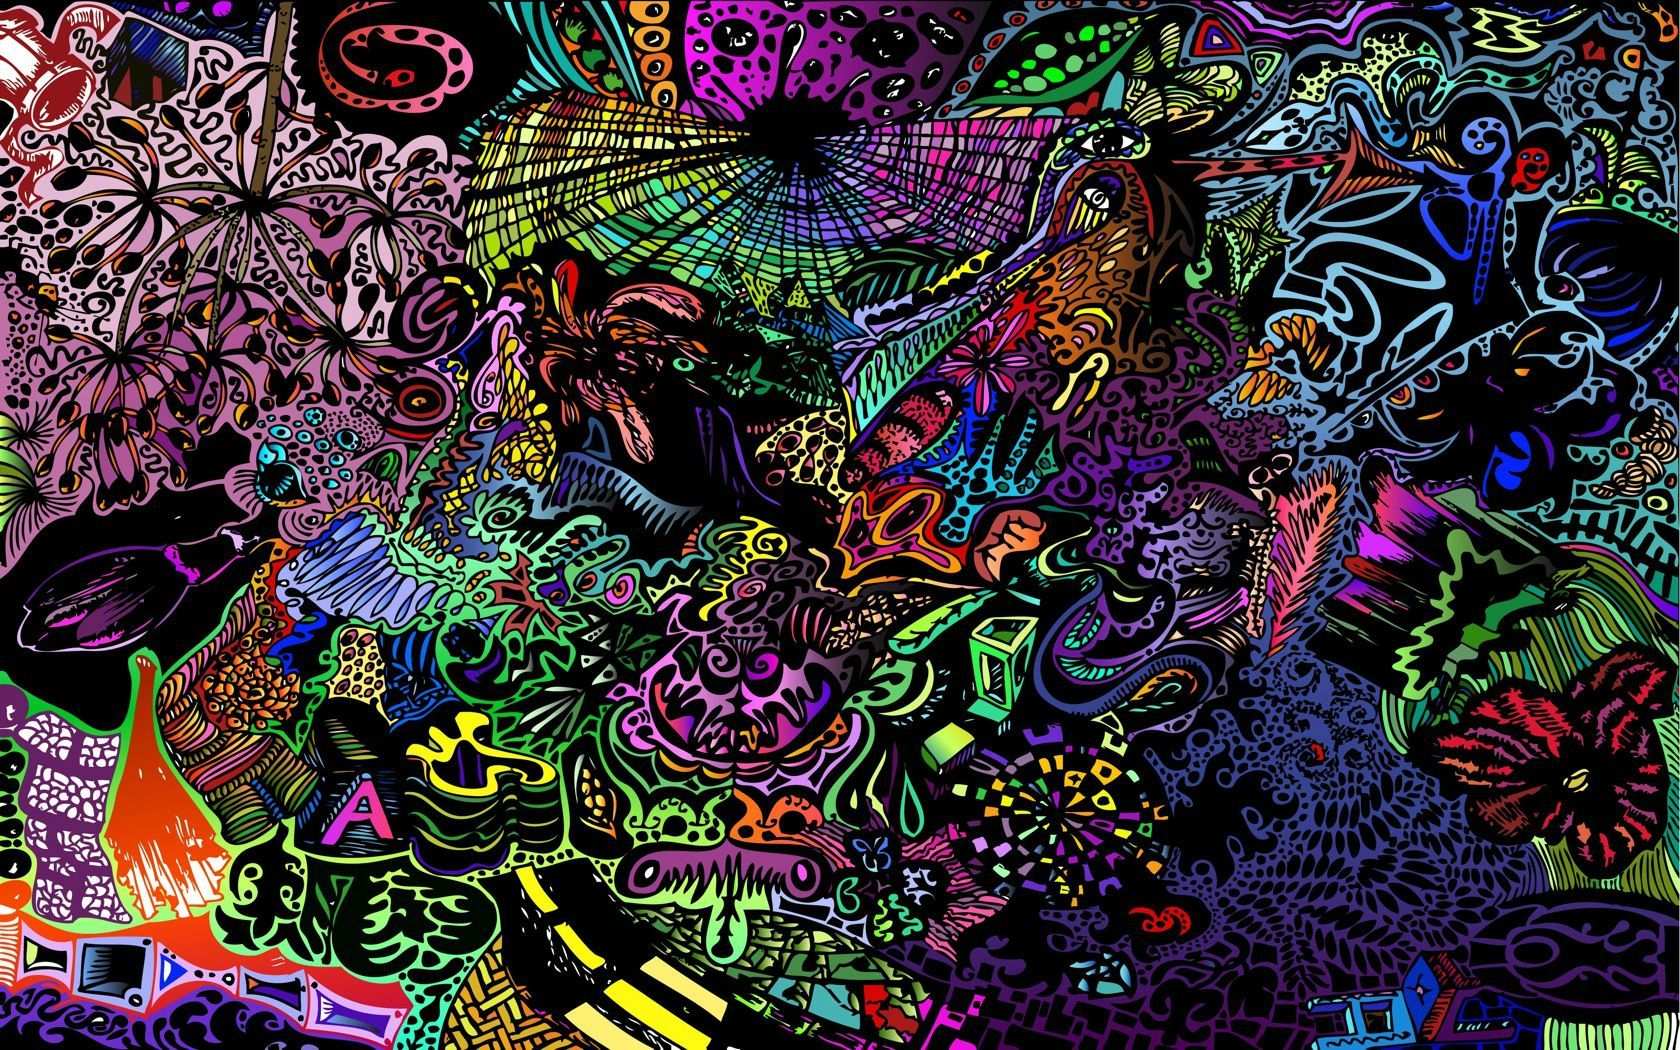 575 Wallpapers (All 1080p, No watermarks) Trippy